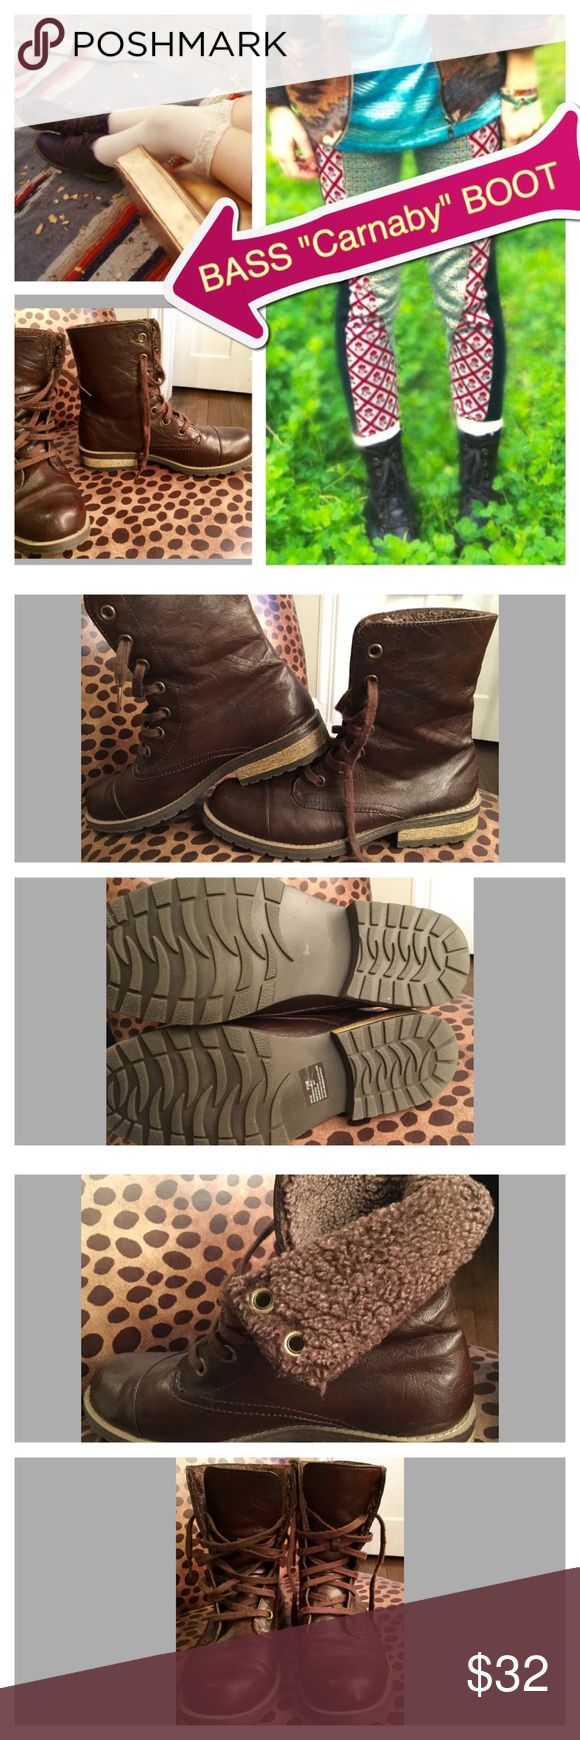 """Bass """"Carnaby"""" $120 Brown Lace Ups Bass Brown Carnaby Boot in size 7.5. Both man made/leather materials. These are in excellent, preowned condition. See the soles to see how little they've been worn. Can be worn up or cuffed down. Insides are made of super soft, fuzzy lining. Bass Shoes"""